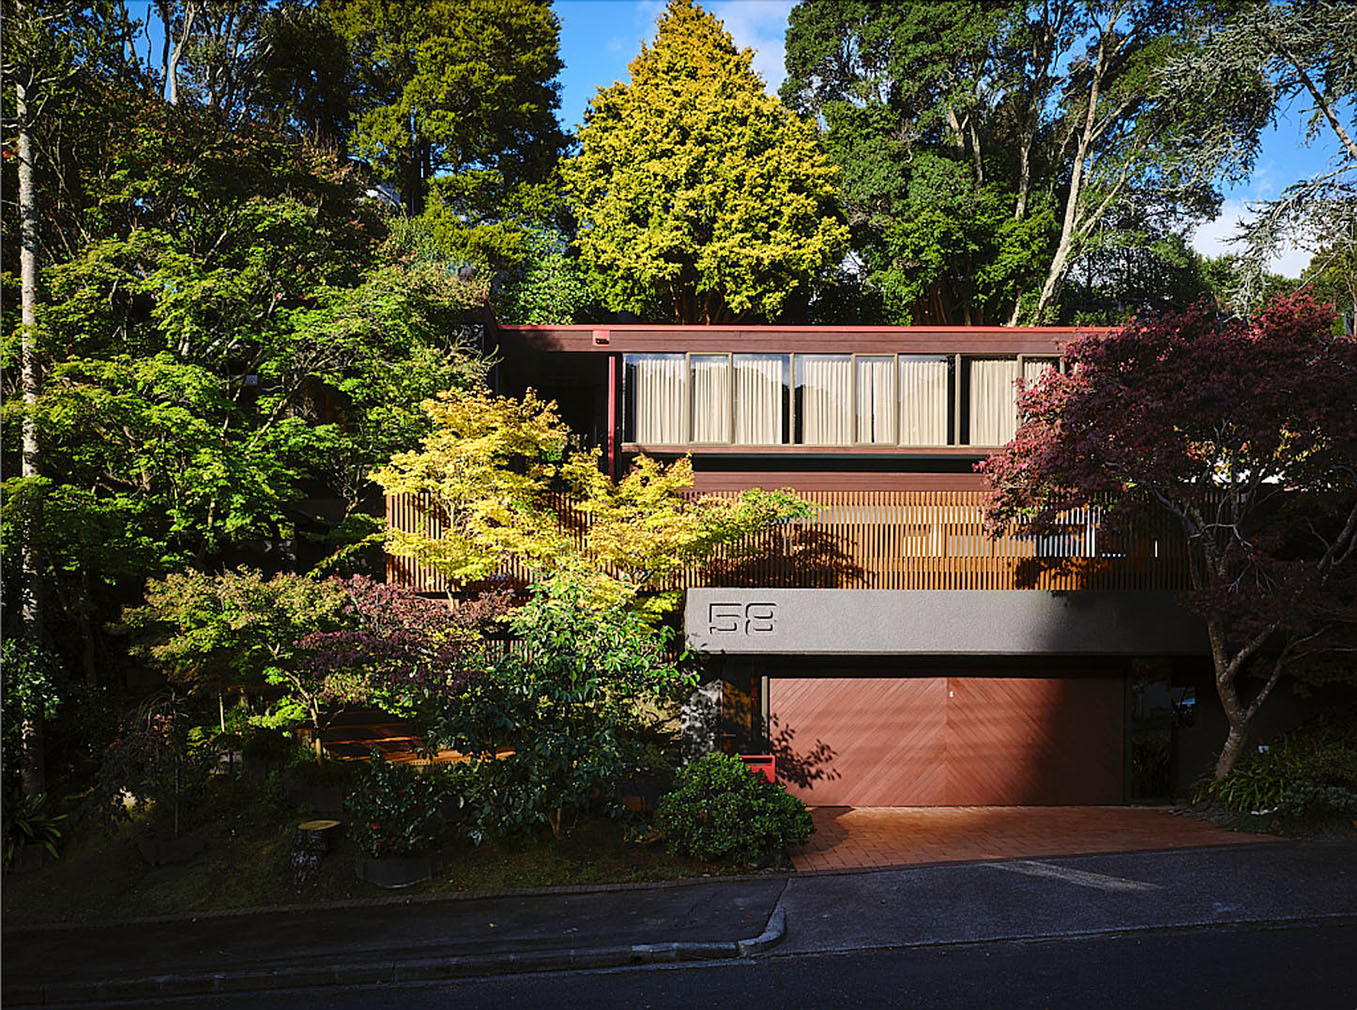 The 1970s home has serious curb appeal thanks to its stepped silhouette and terraced gardens